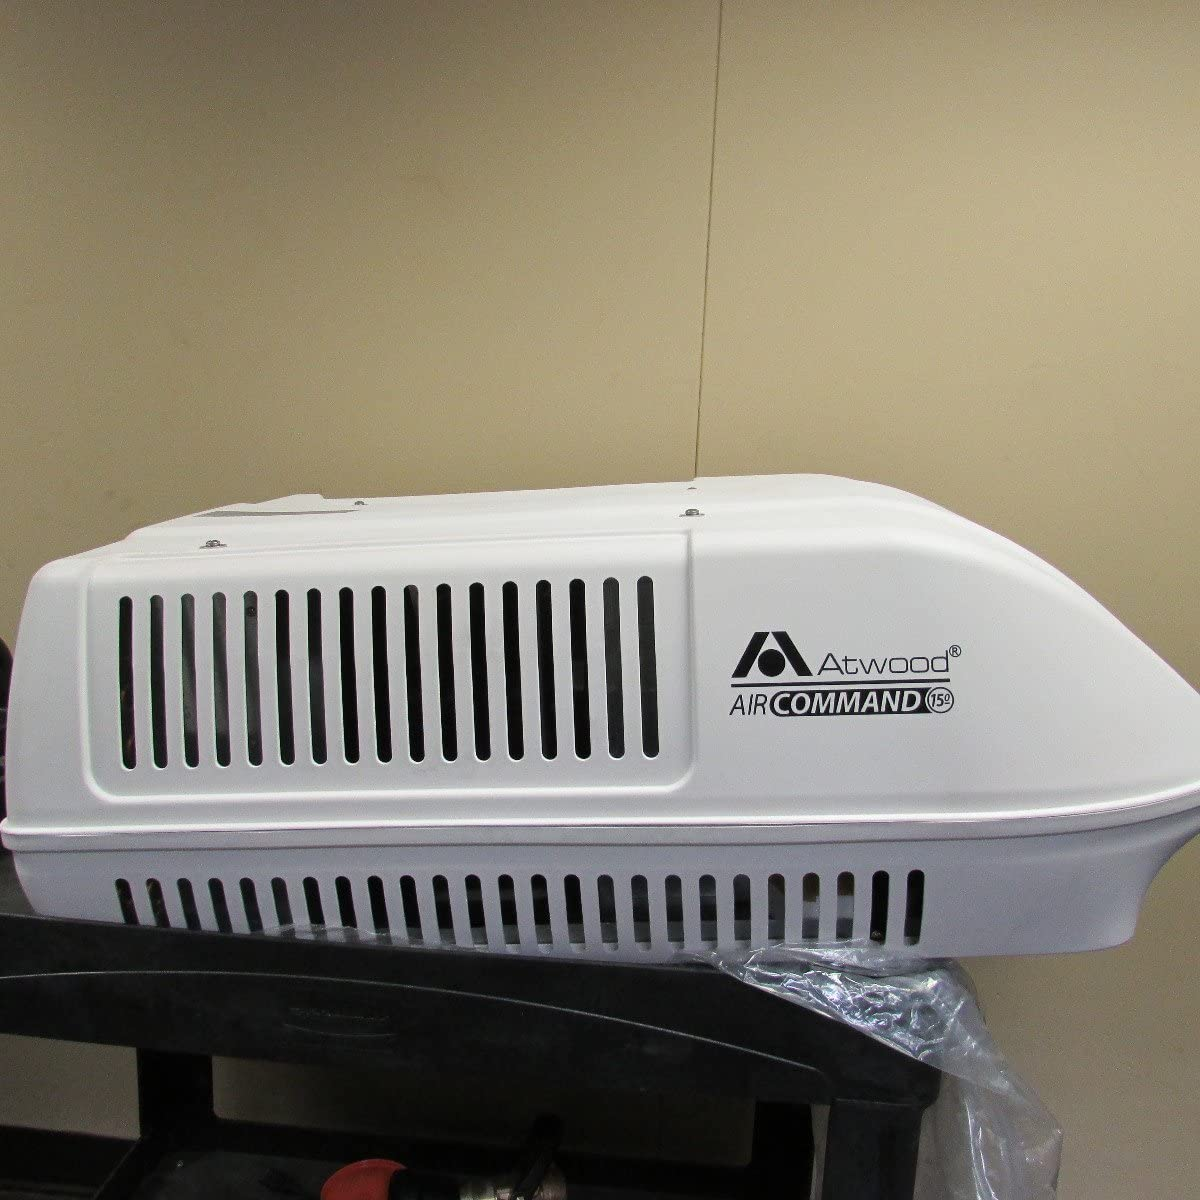 Top 6 Best RV Air Conditioner Reviews of 2019 & Buying Guide 6